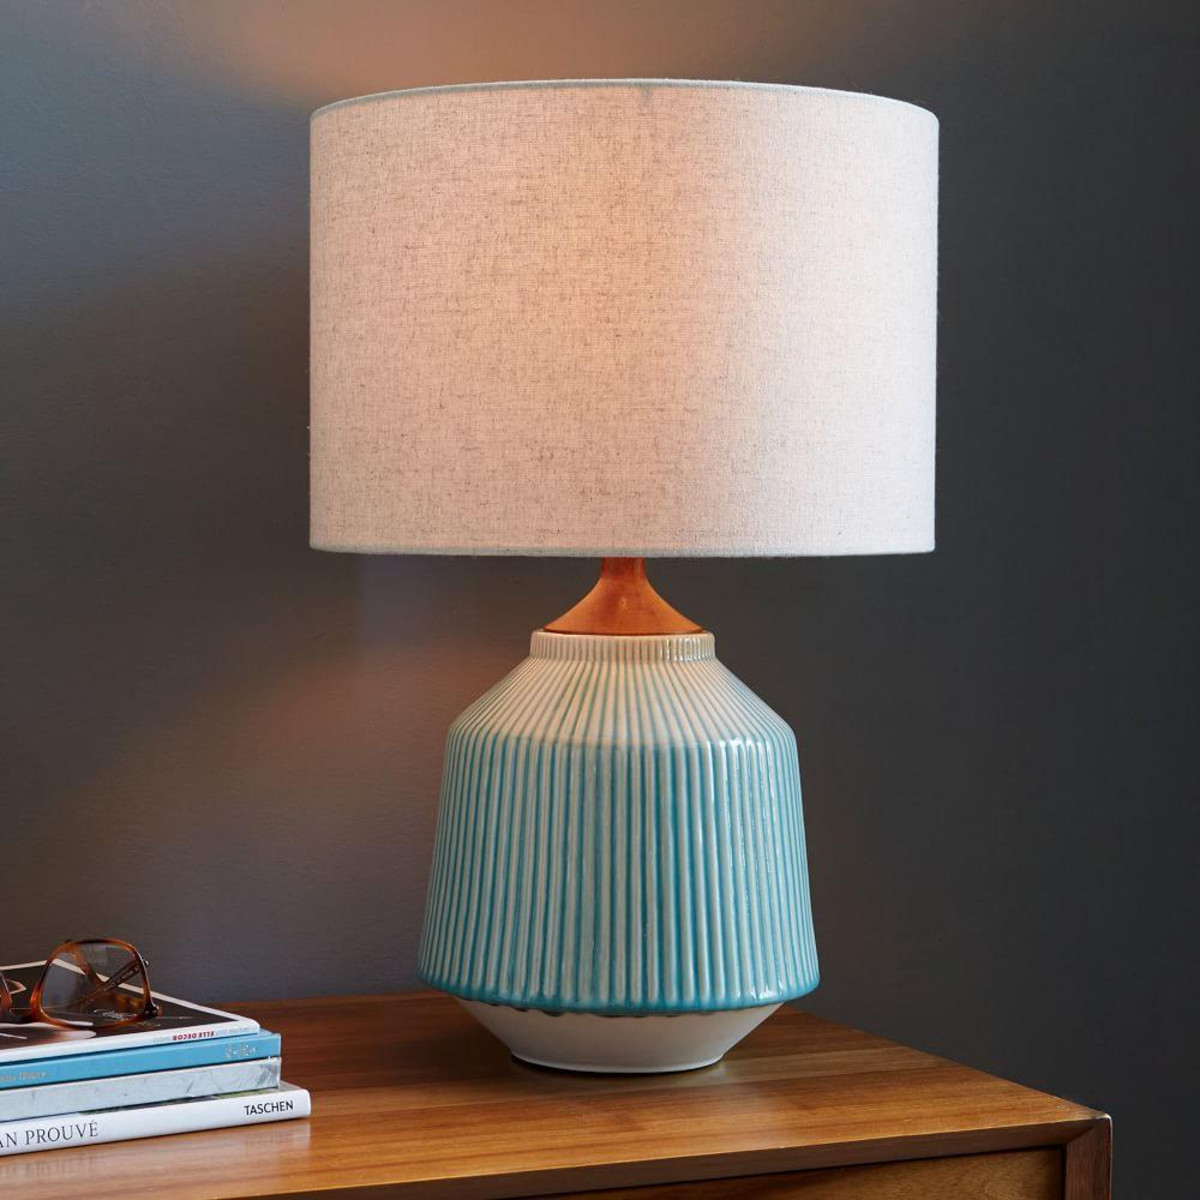 10 beautiful pottery lamps the beat that my heart skipped